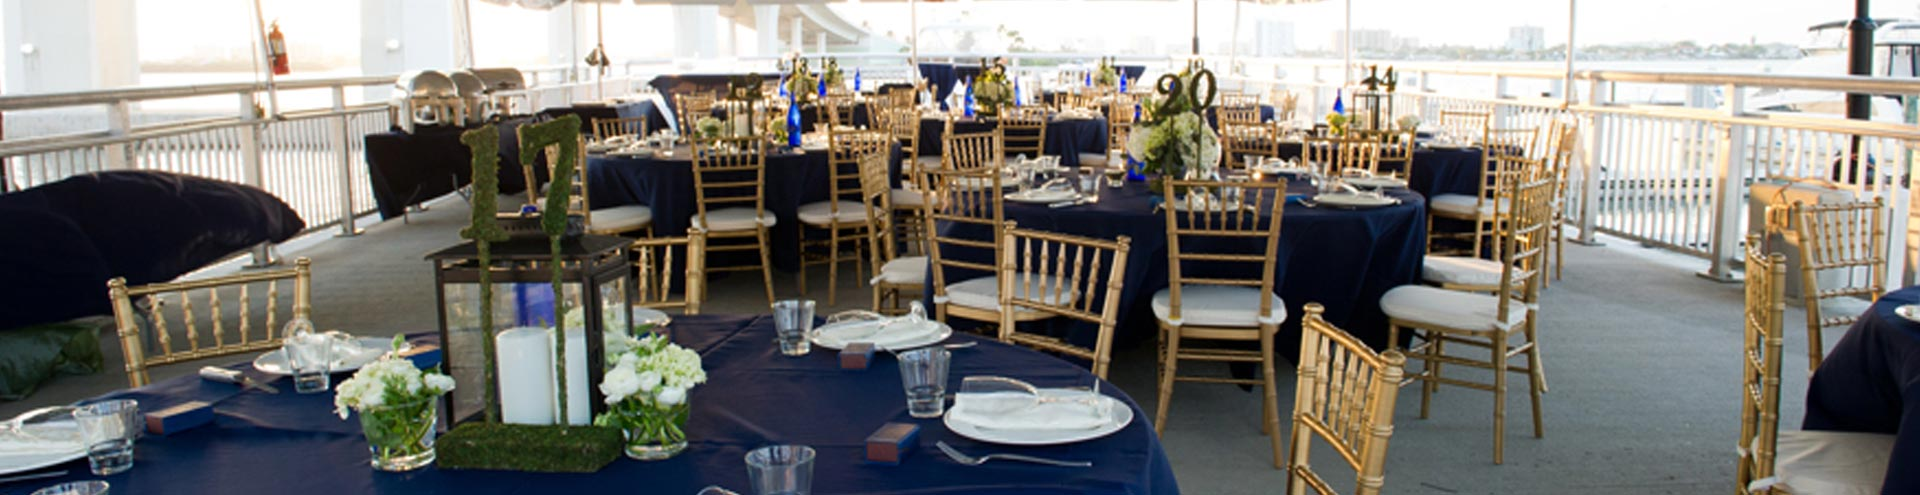 Elite Events Rentals We Rent High Quality Tents Tables Chairs Much More